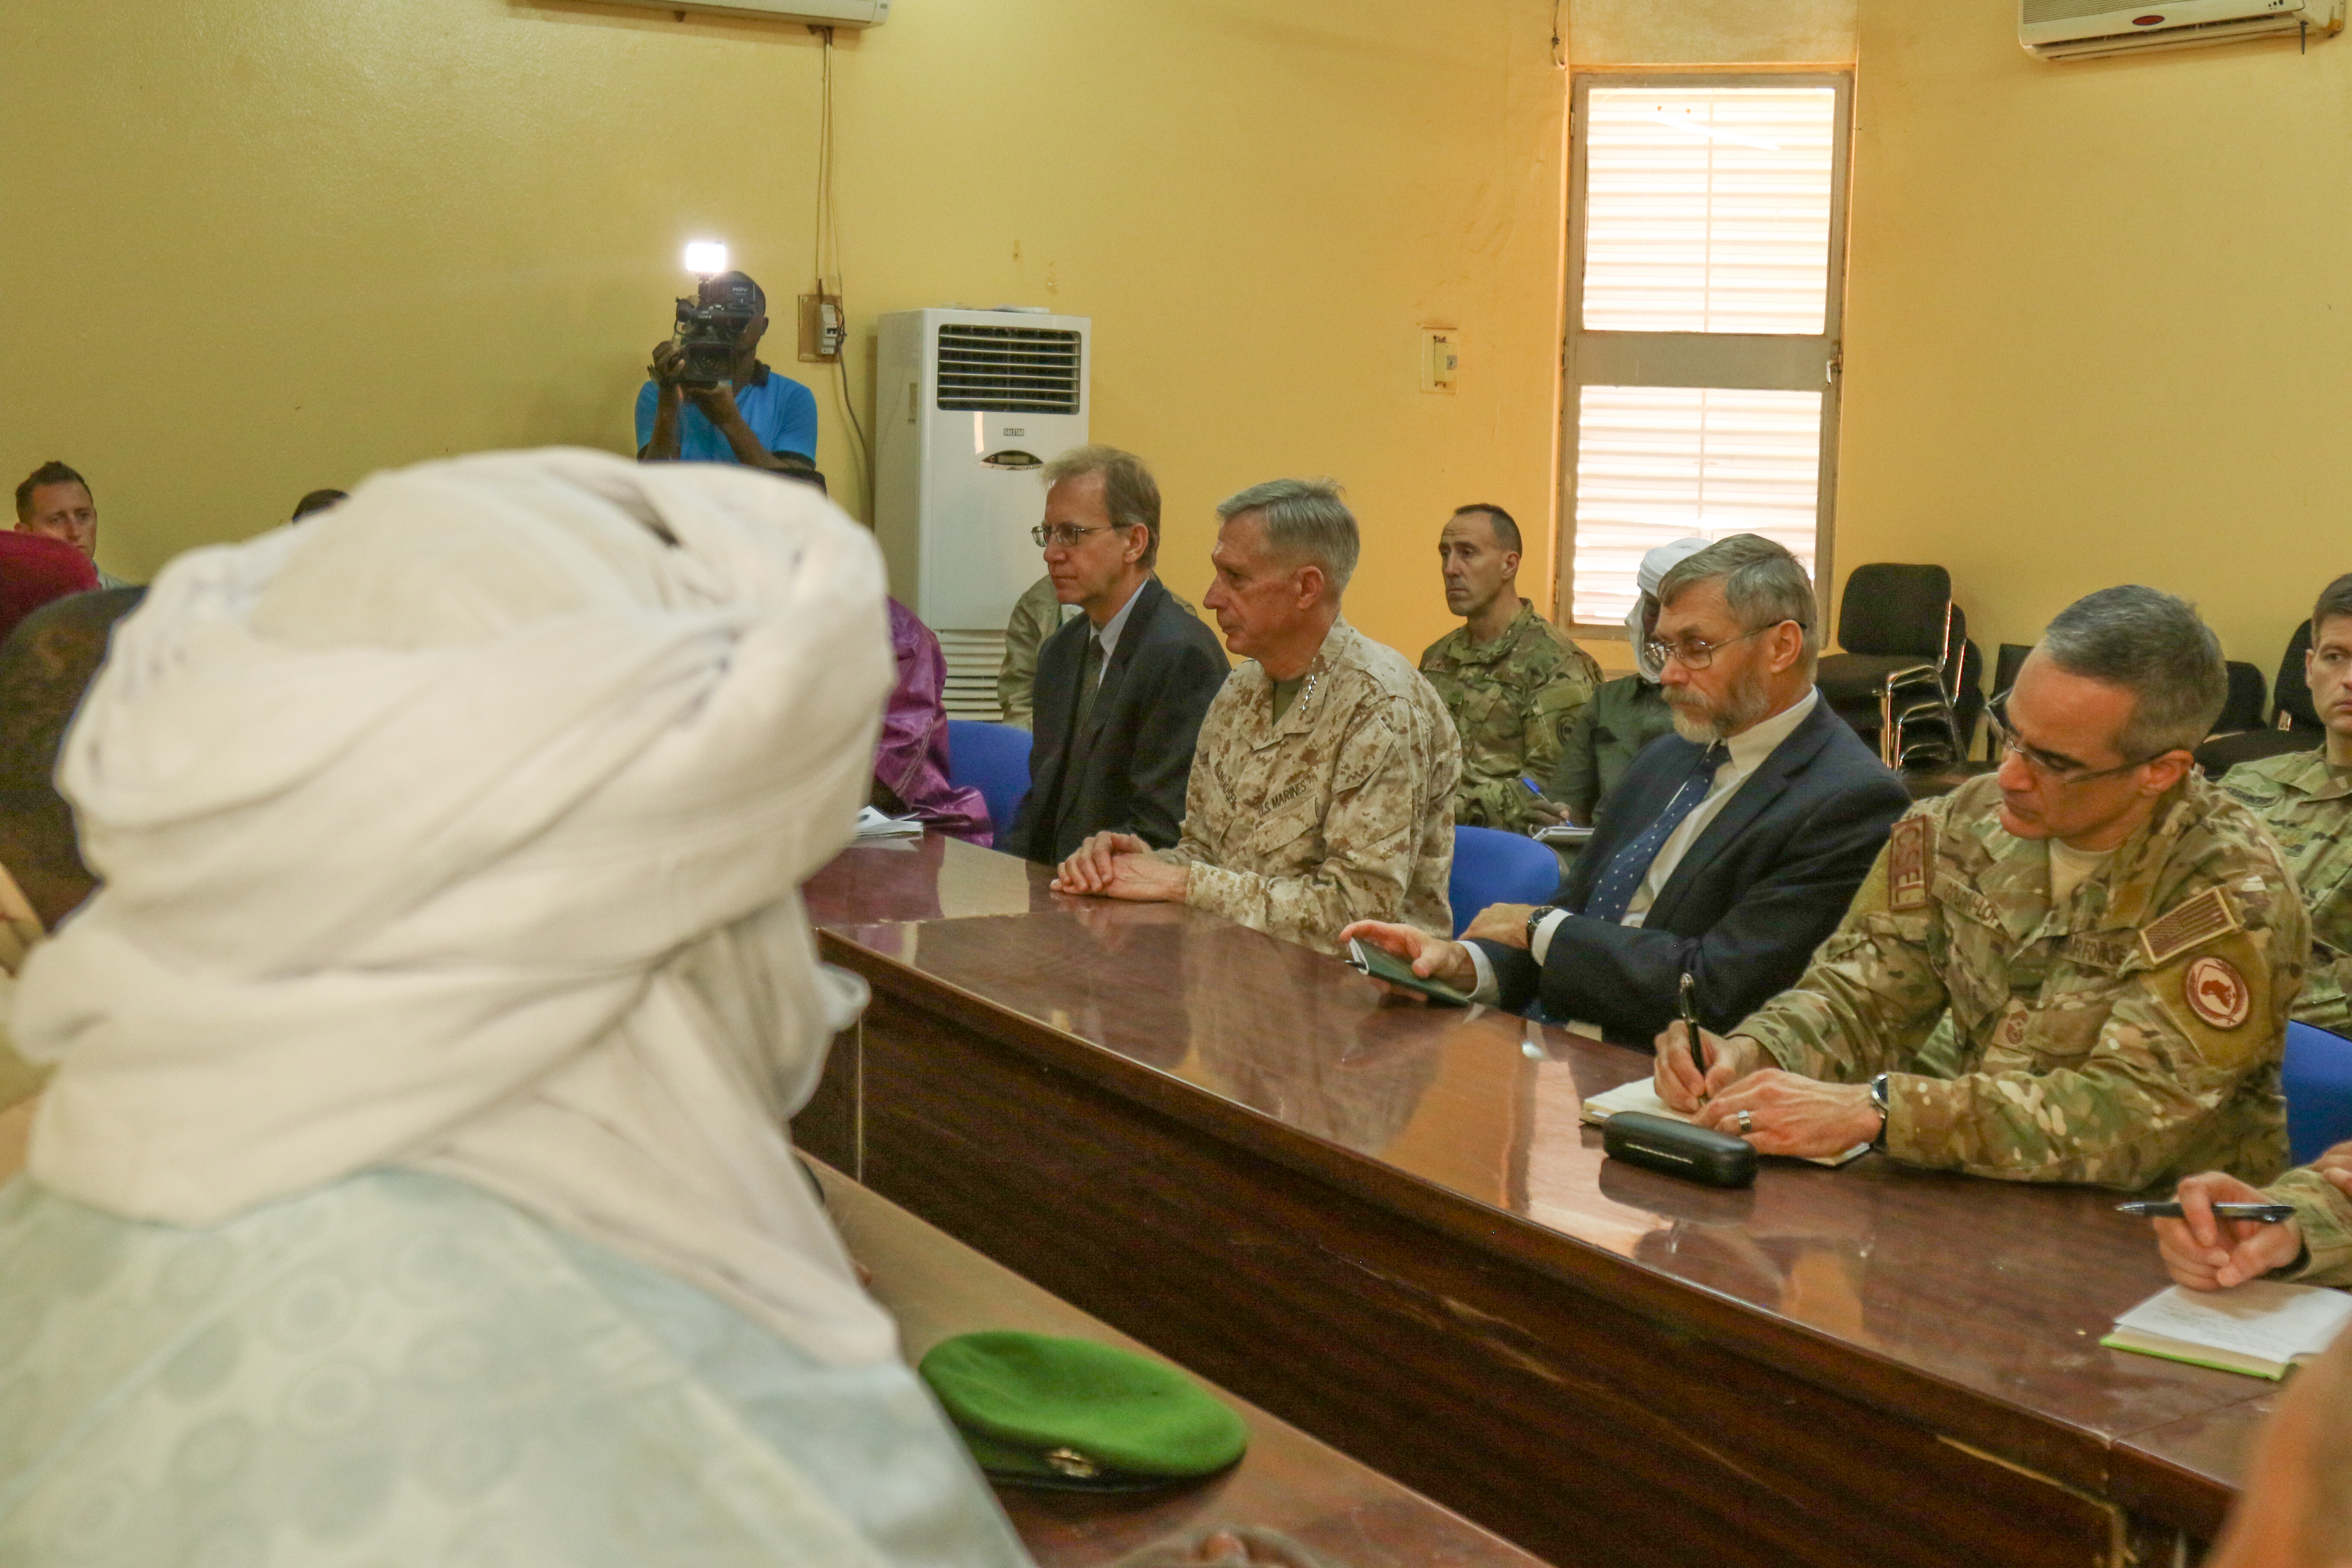 U.S. Marine Corps Gen. Thomas D. Waldhauser, commander, U.S. Africa Command, and other U.S. military officials meet with civic, government, Nigerien military leaders during a visit to Agadez, Niger Jan. 25, 2018.